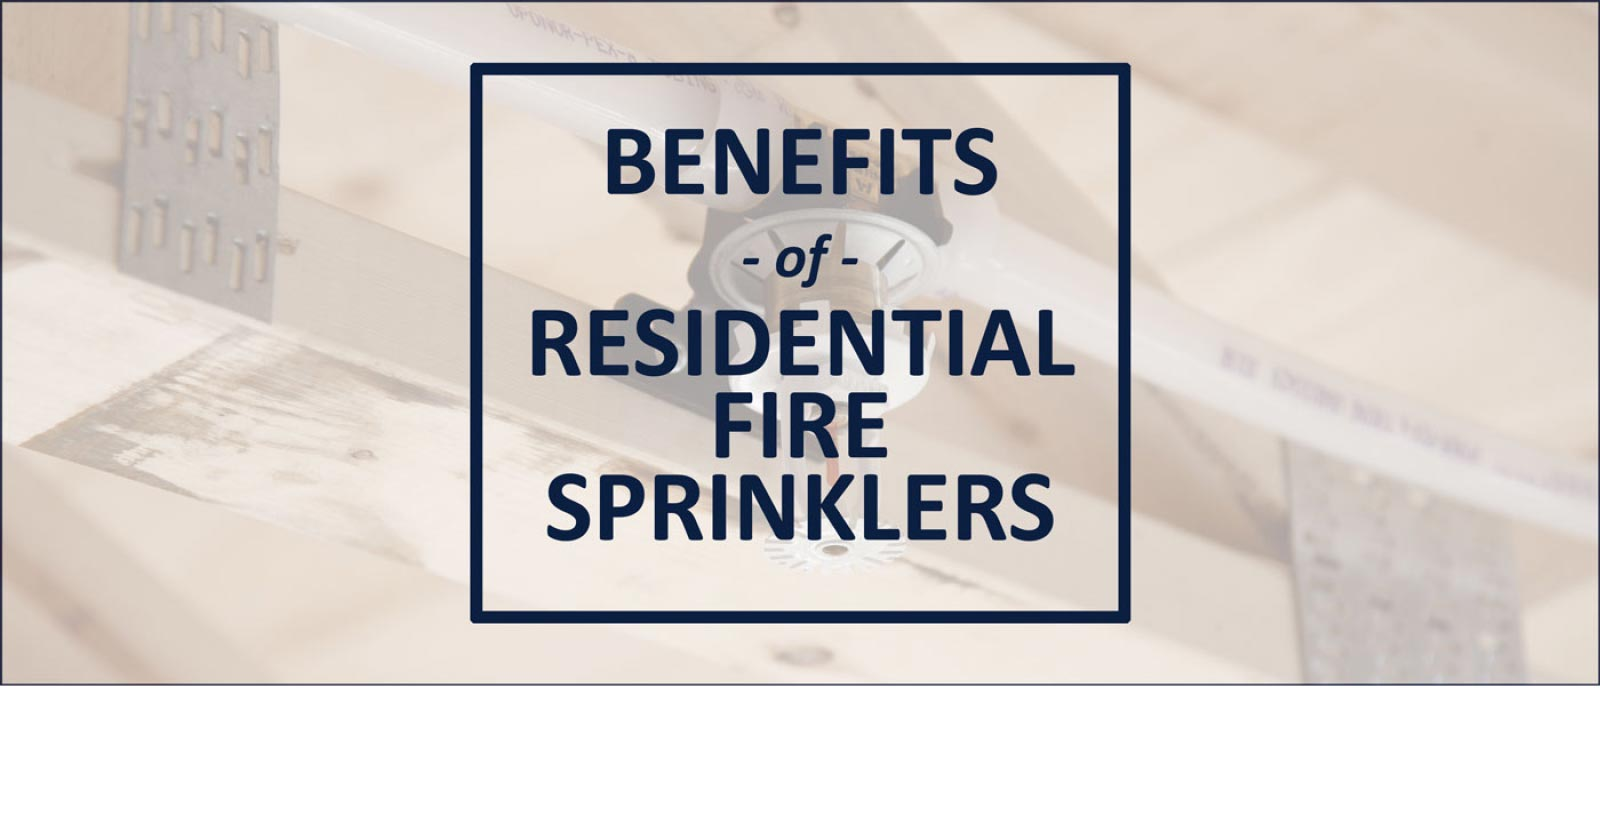 Benefits of Residential Fire Sprinklers